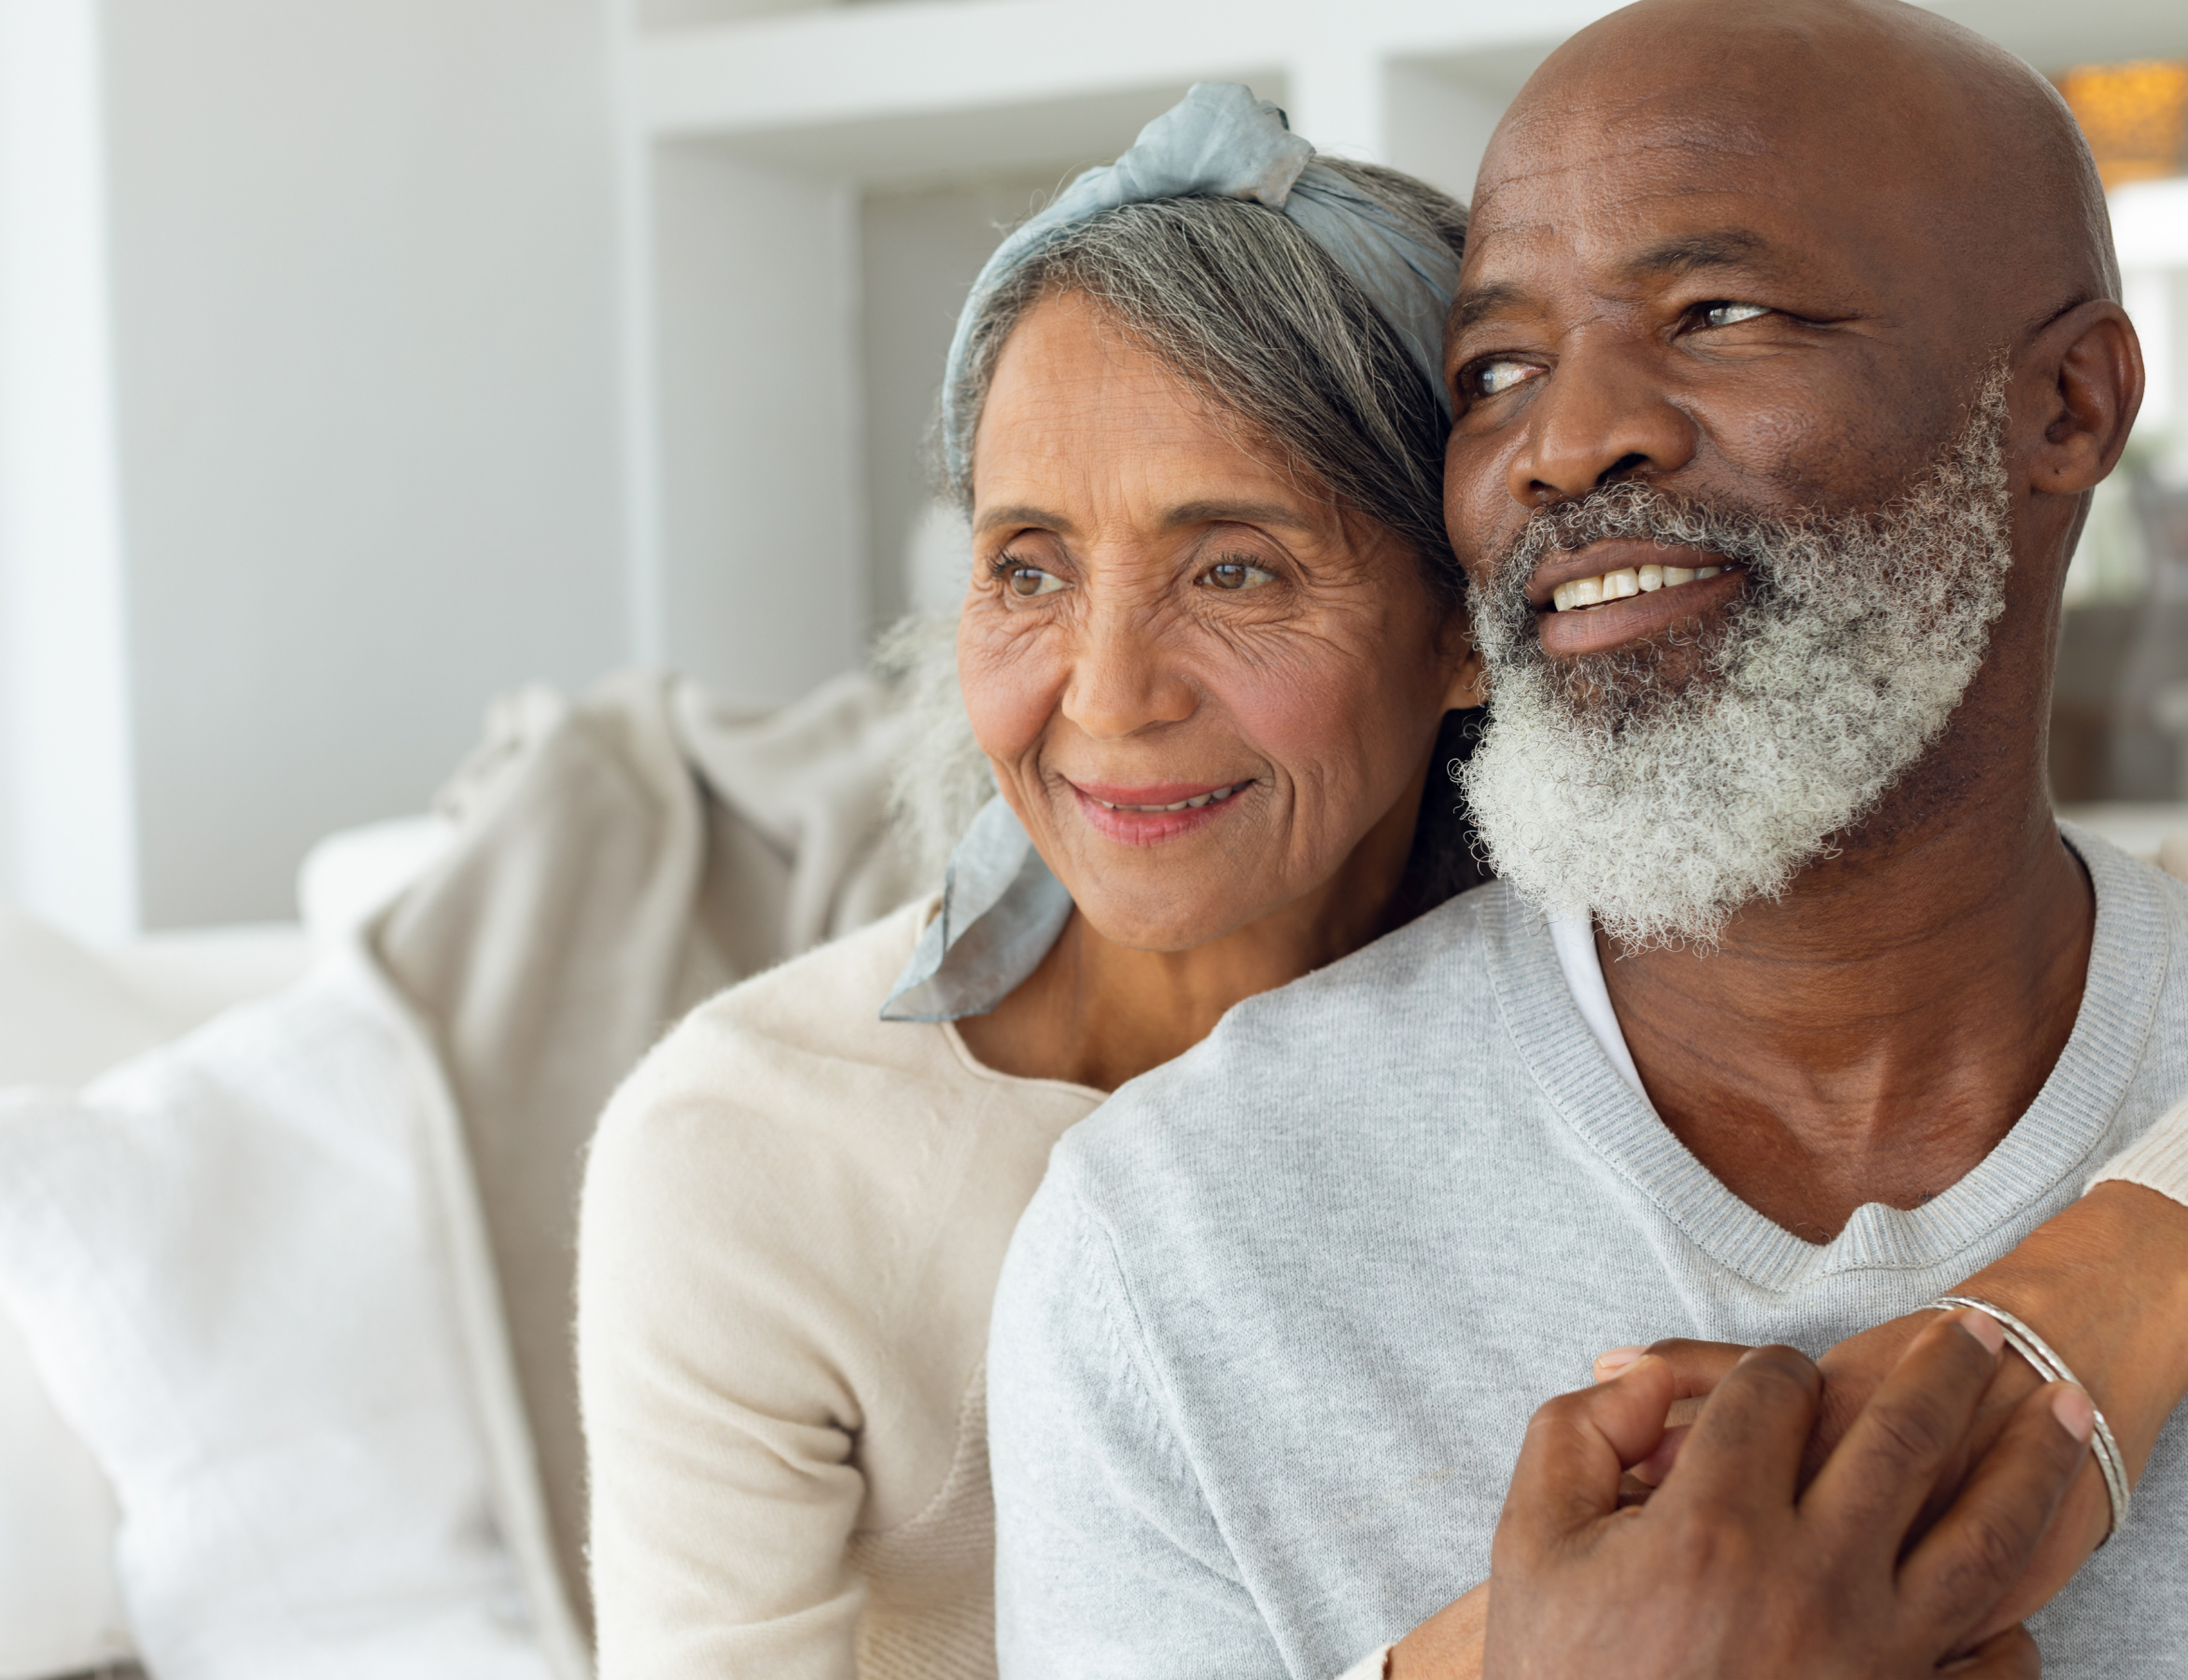 Interracial couple on couch - facing left